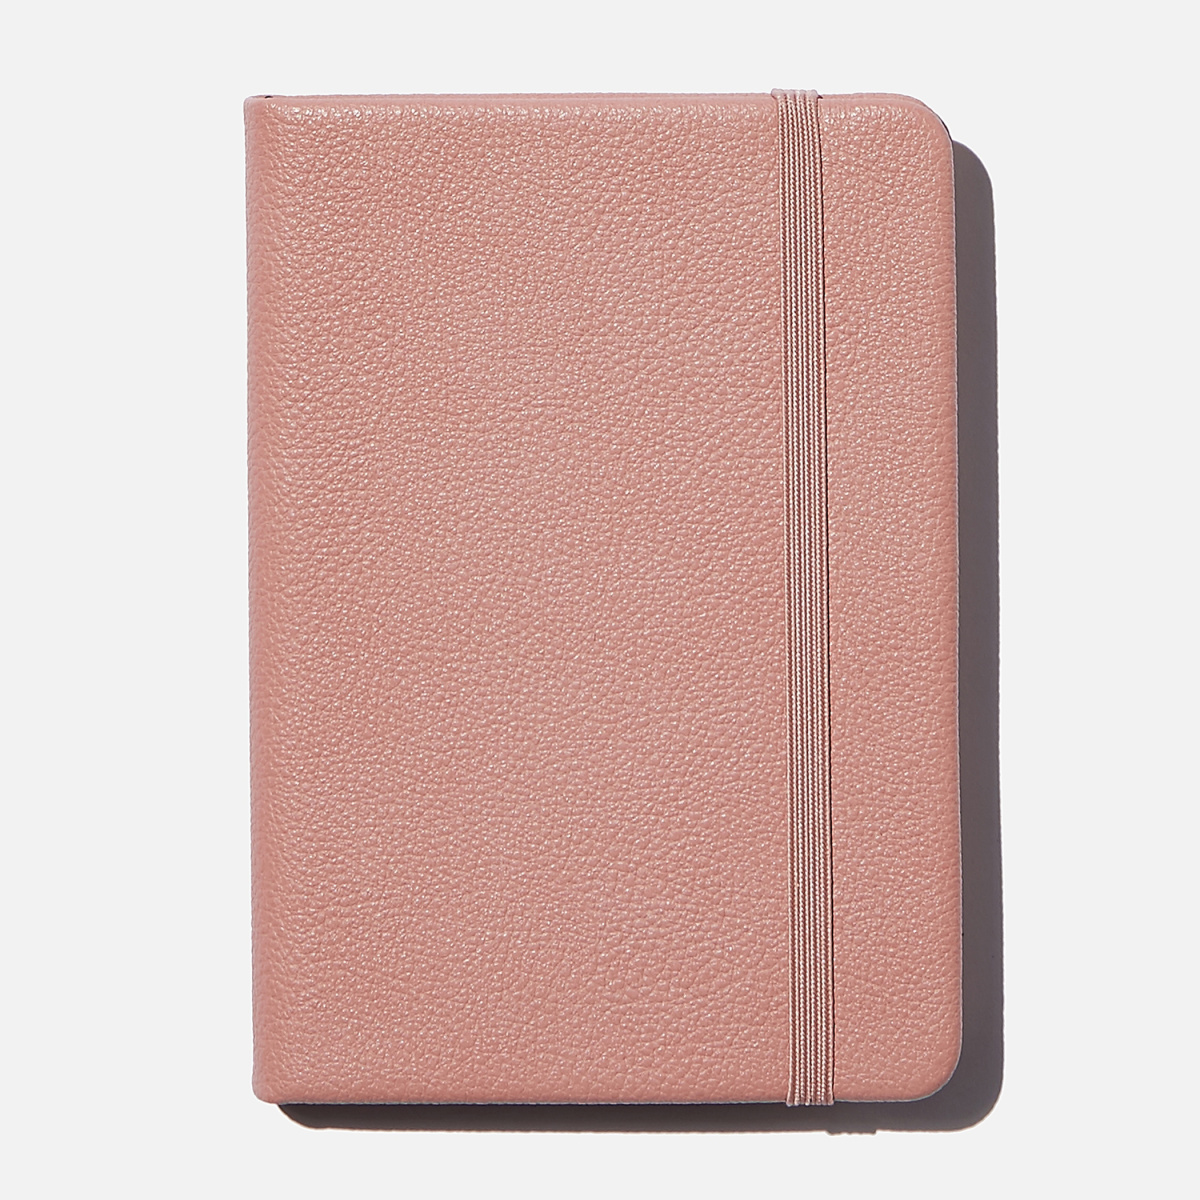 Typo Dusty Rose A6 Sized Buffalo Dot Pages Journal